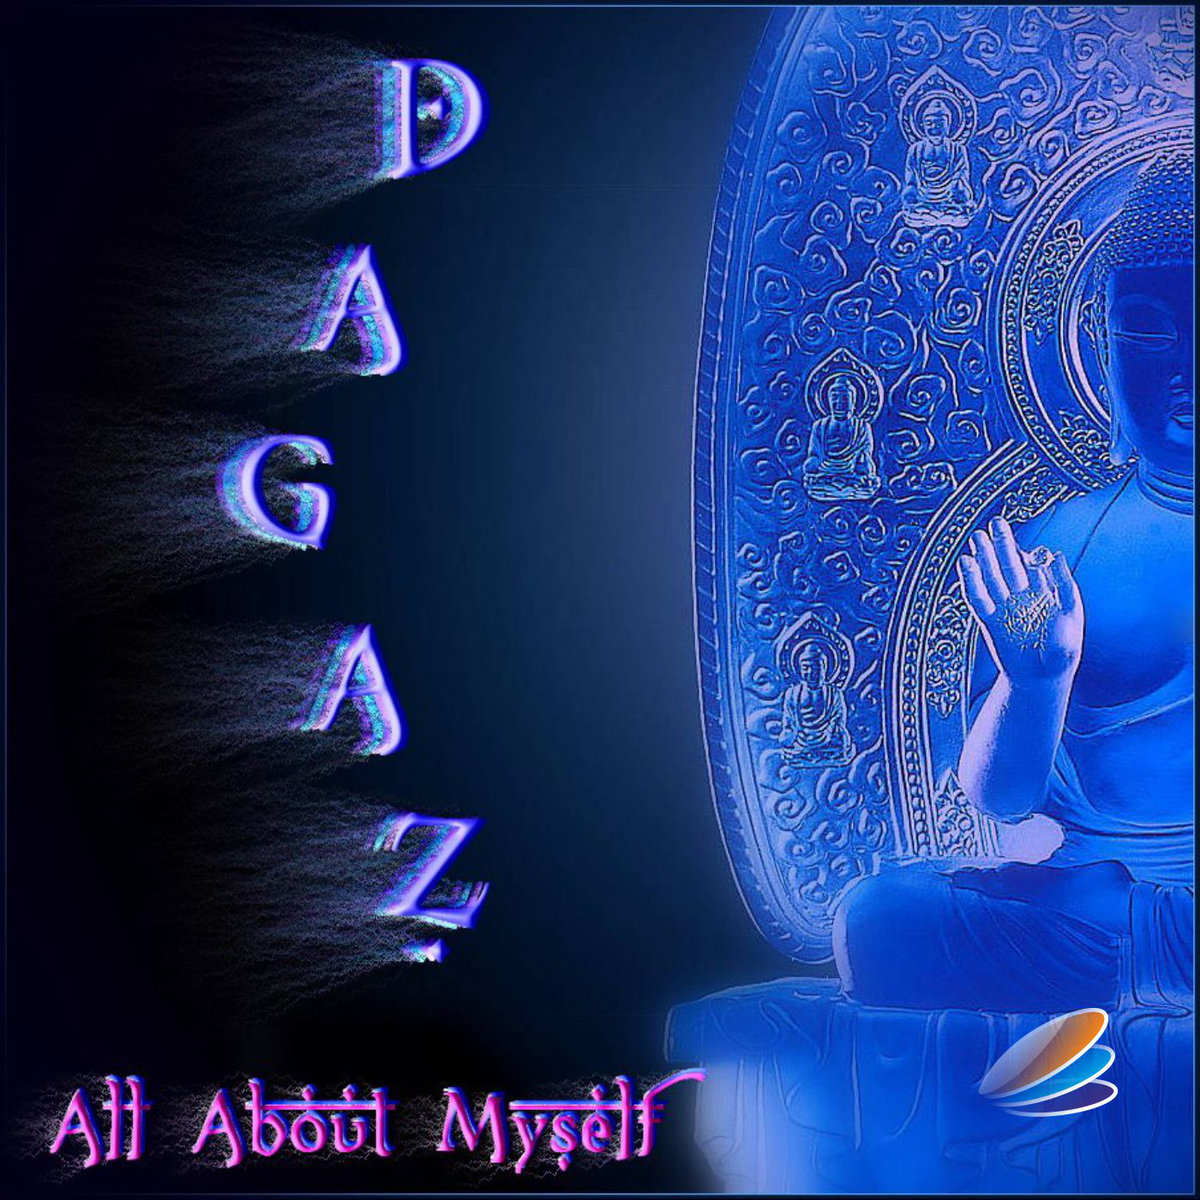 Dagaz - All About Myself